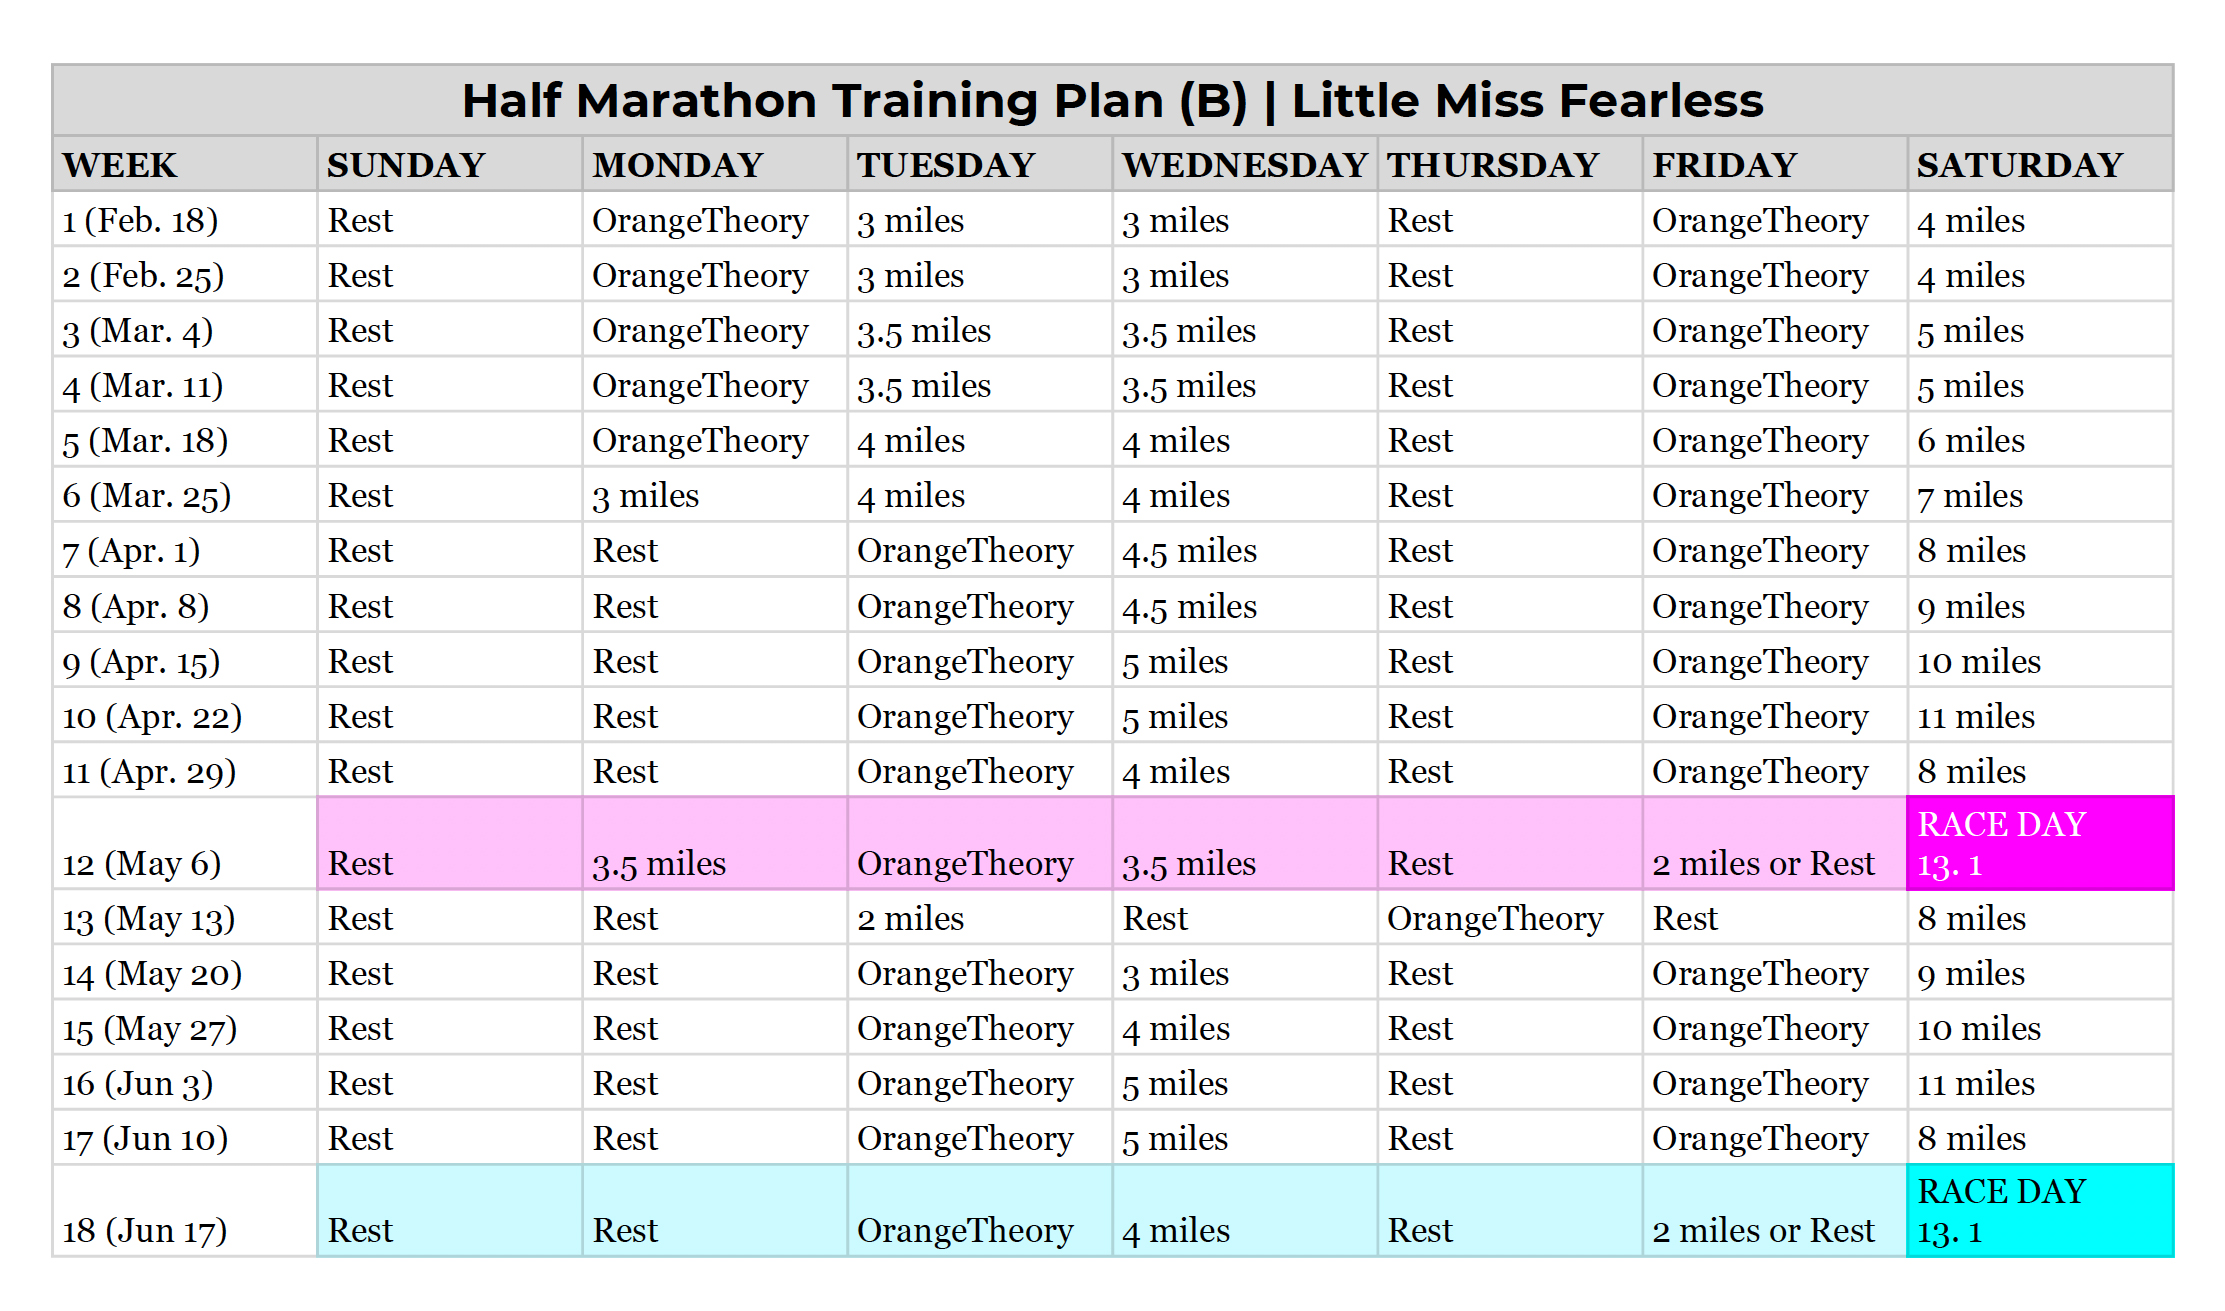 My Half Marathon Training Plan | Little Miss Fearless